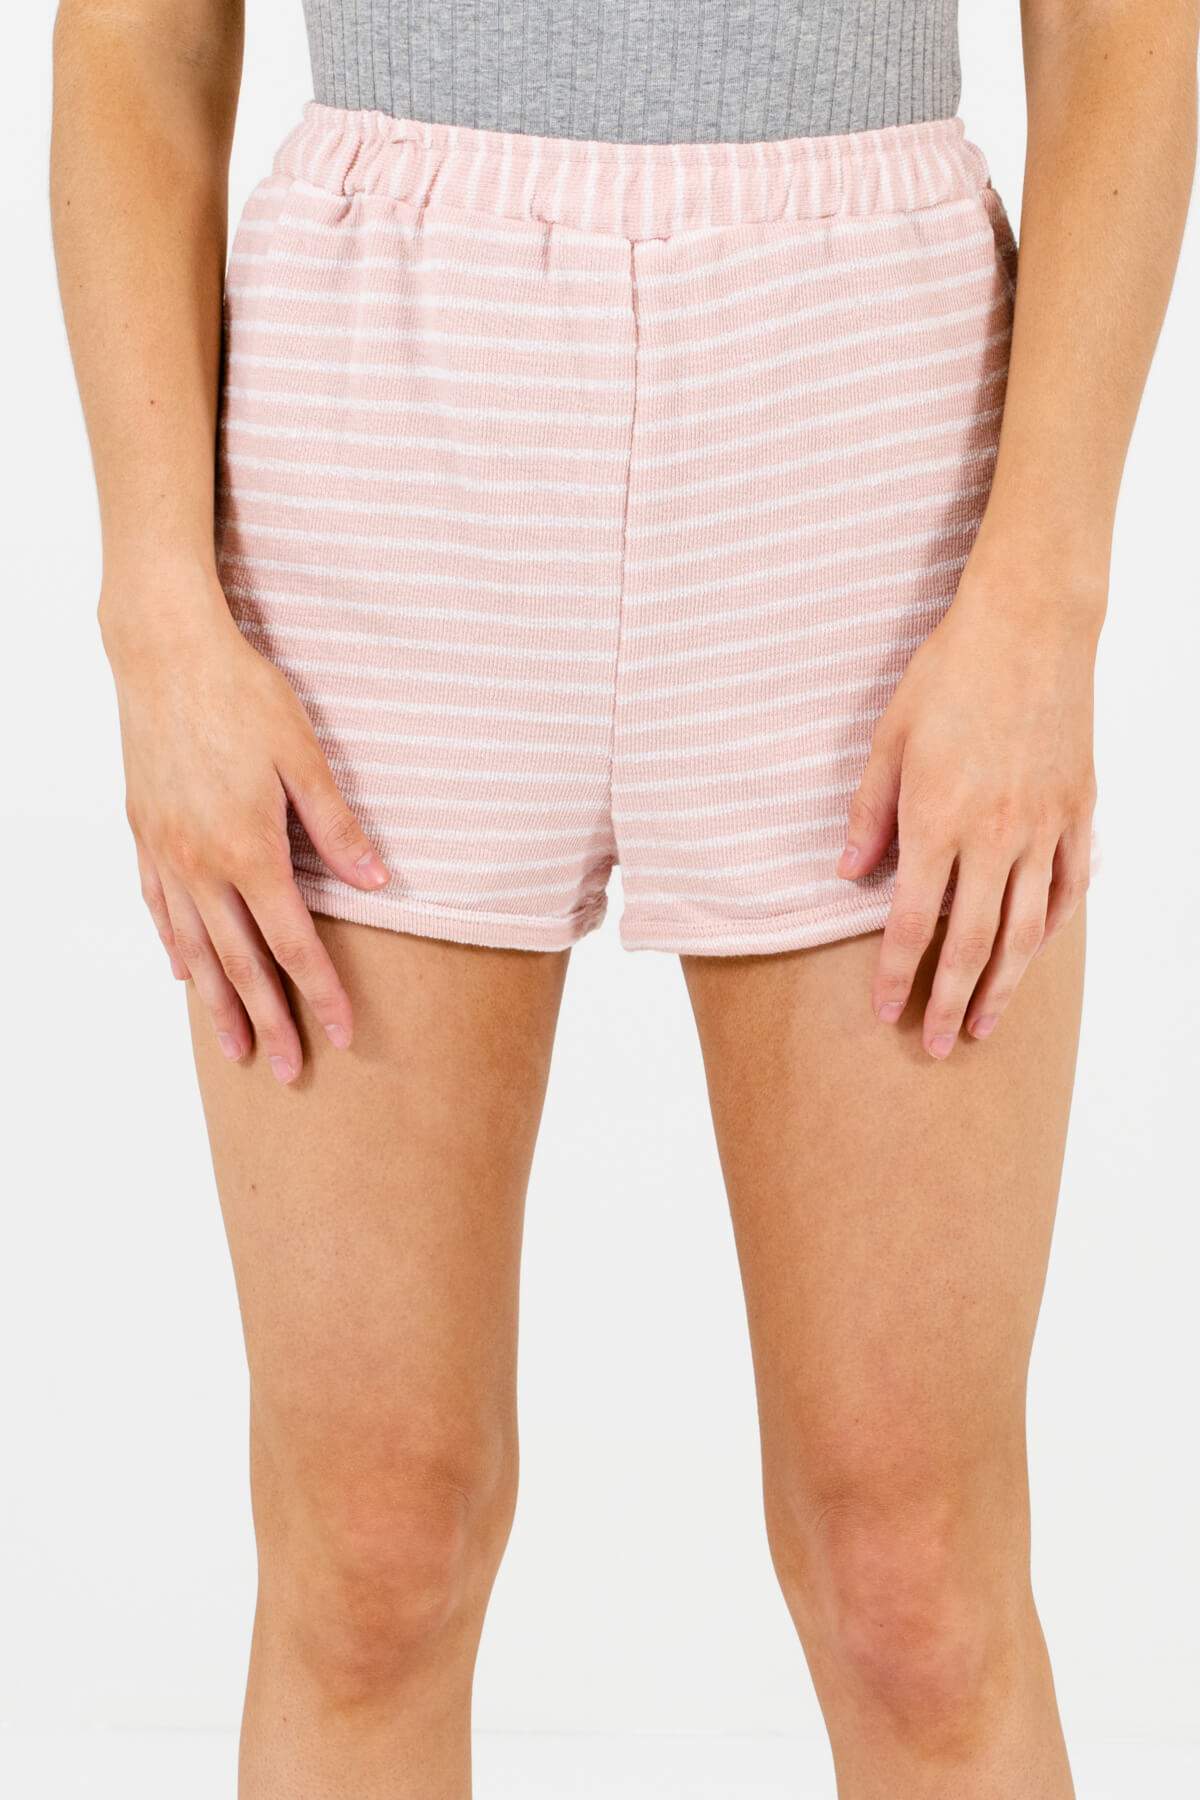 Pink and White Striped Boutique Shorts for Women